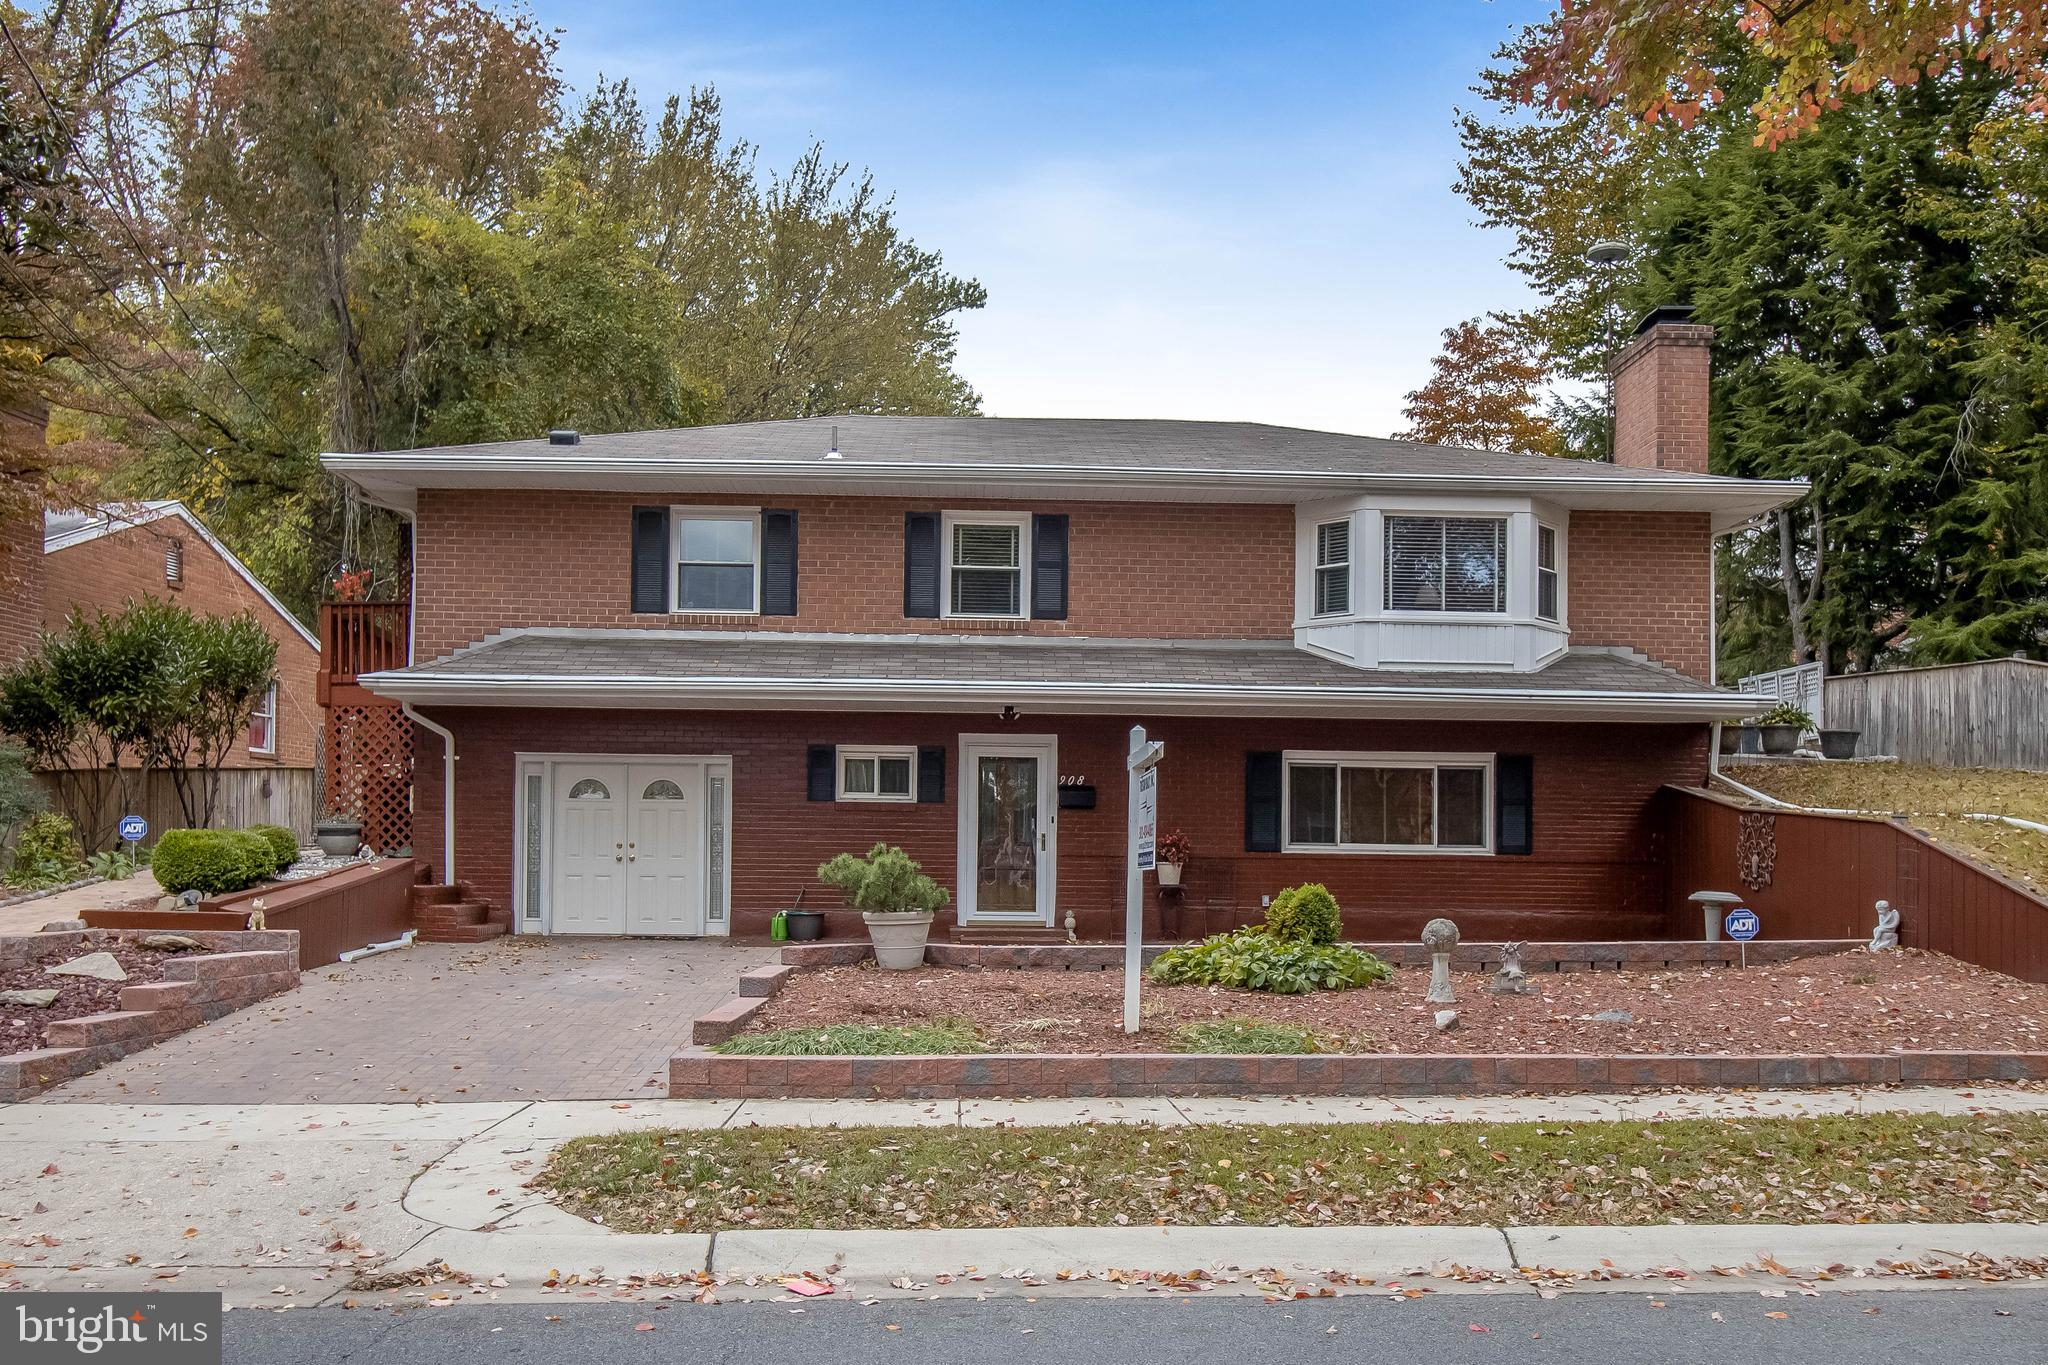 908 BUCKINGHAM DRIVE, SILVER SPRING, MD 20901